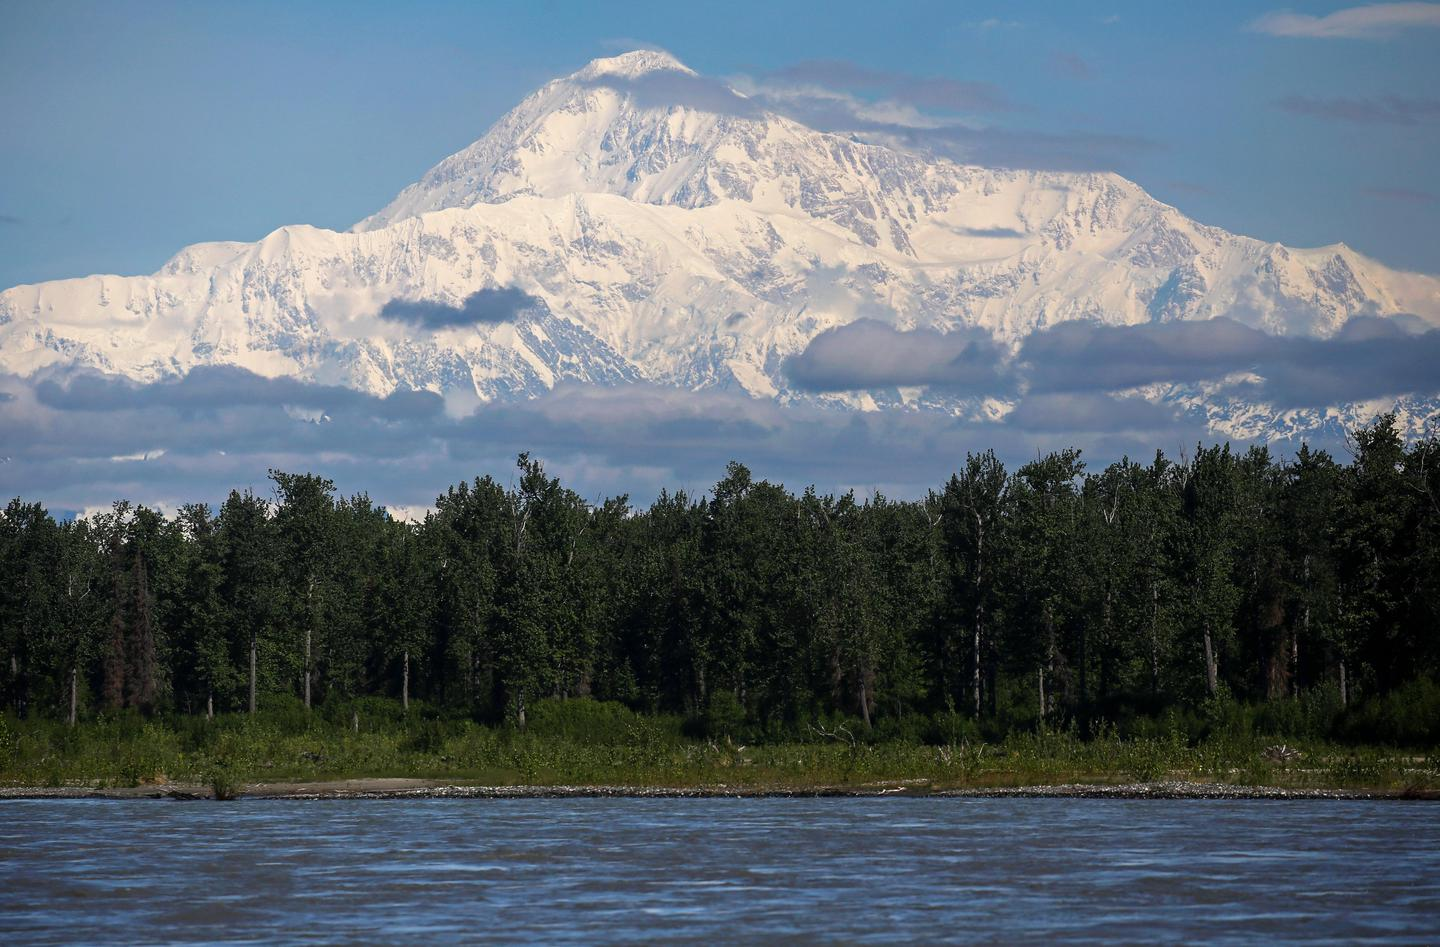 Denali ViewA short walk from the ranger station is the Talkeetna River, from which a great view of Denali can be found on clear days